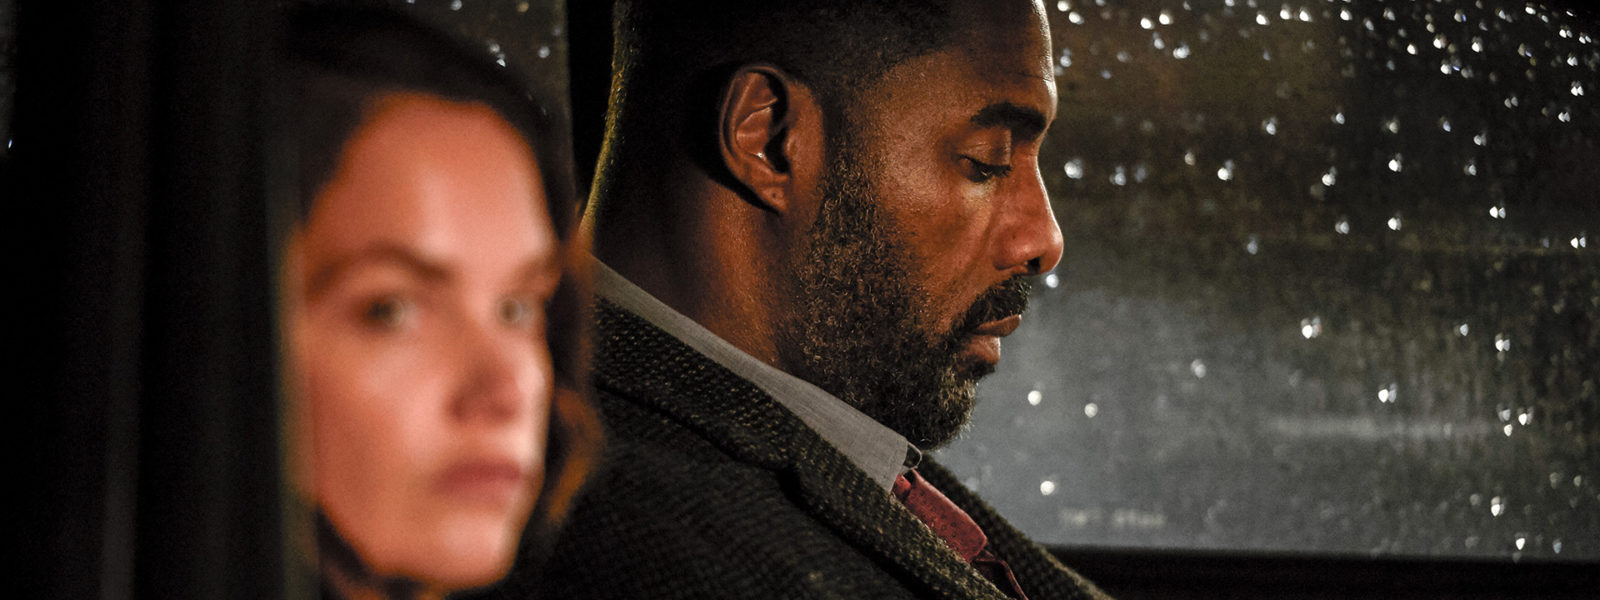 Luther_503_1920x1080-mpx